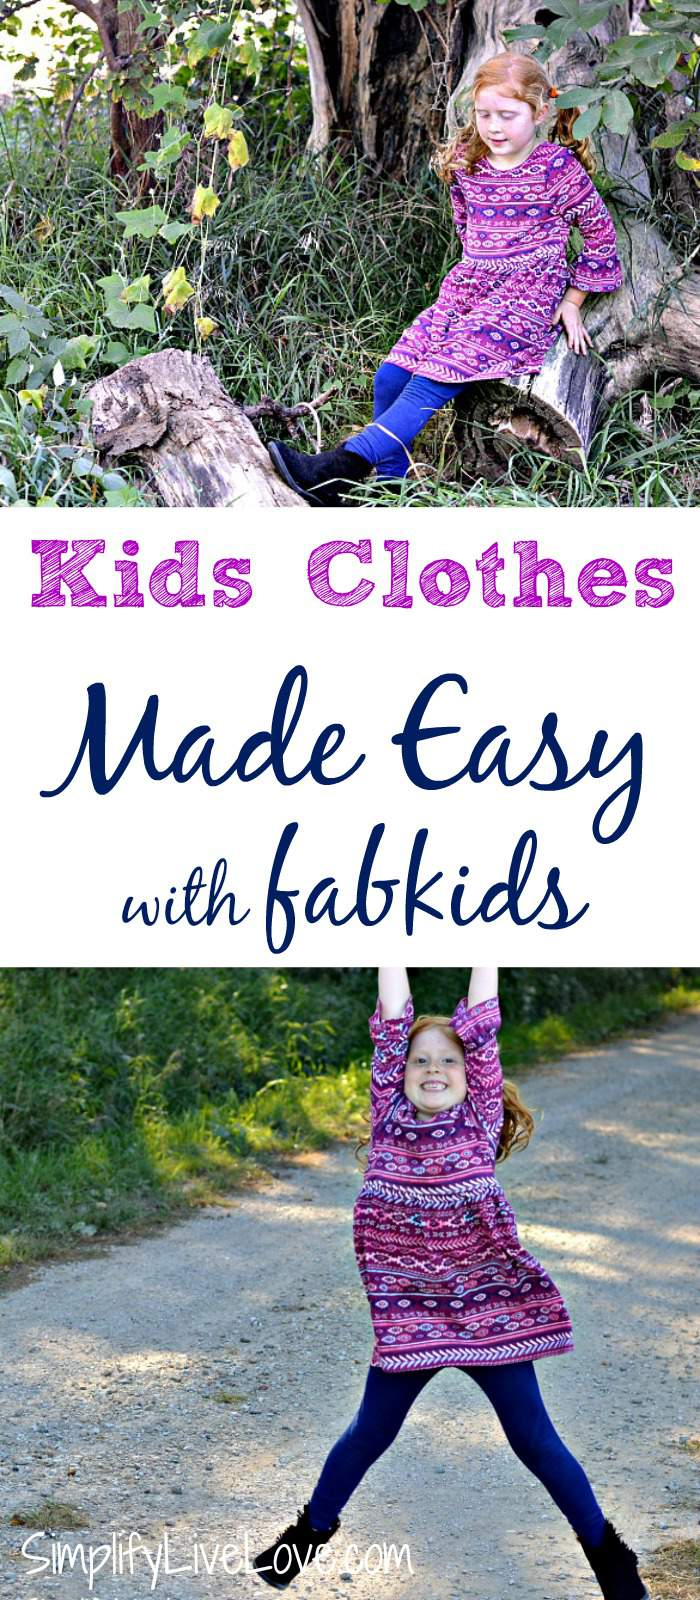 Kids-clothes-made-easy-with-fabkids! Check out the limited time offer of two pairs of shoes or boots for only $9.99!